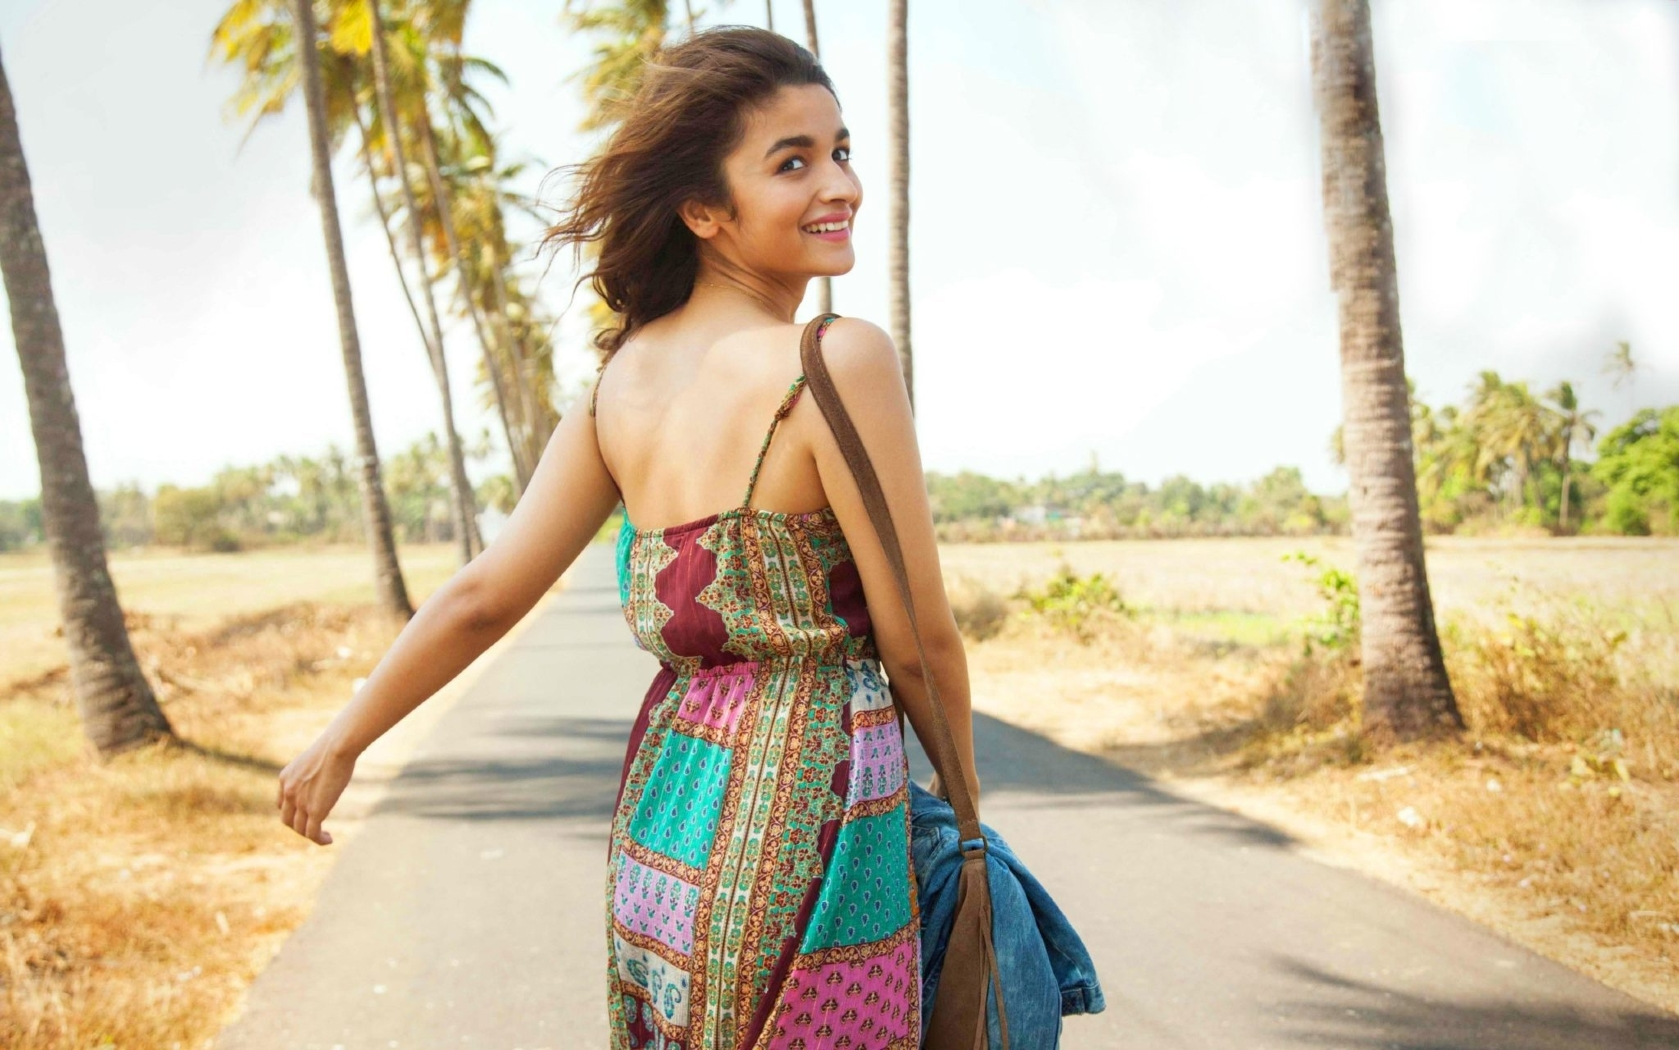 Alia Bhatt Birthday Hd: Alia Bhatt Dear Zindagi, Full HD 2K Wallpaper